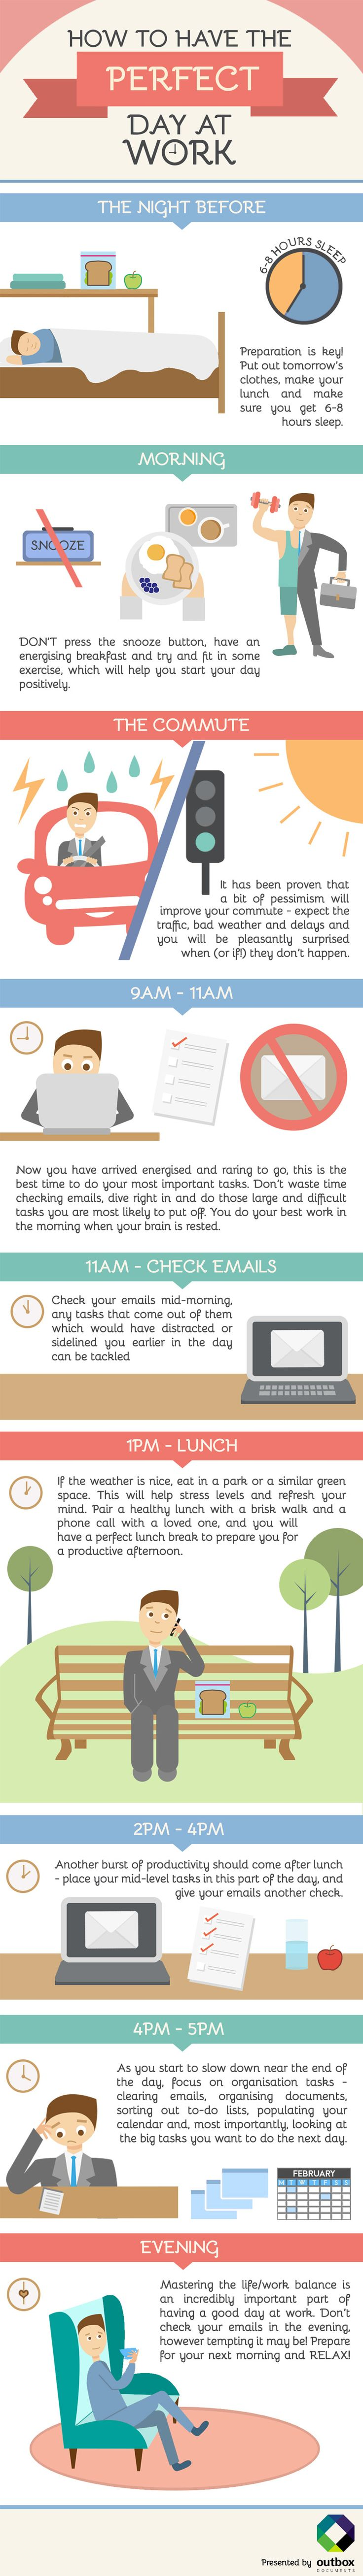 How do your days at work go? Do you find it's always a rush in the morning? Do you never get round to completing your most important tasks due to checking emails? We have created the guide below to having the perfect day at work: